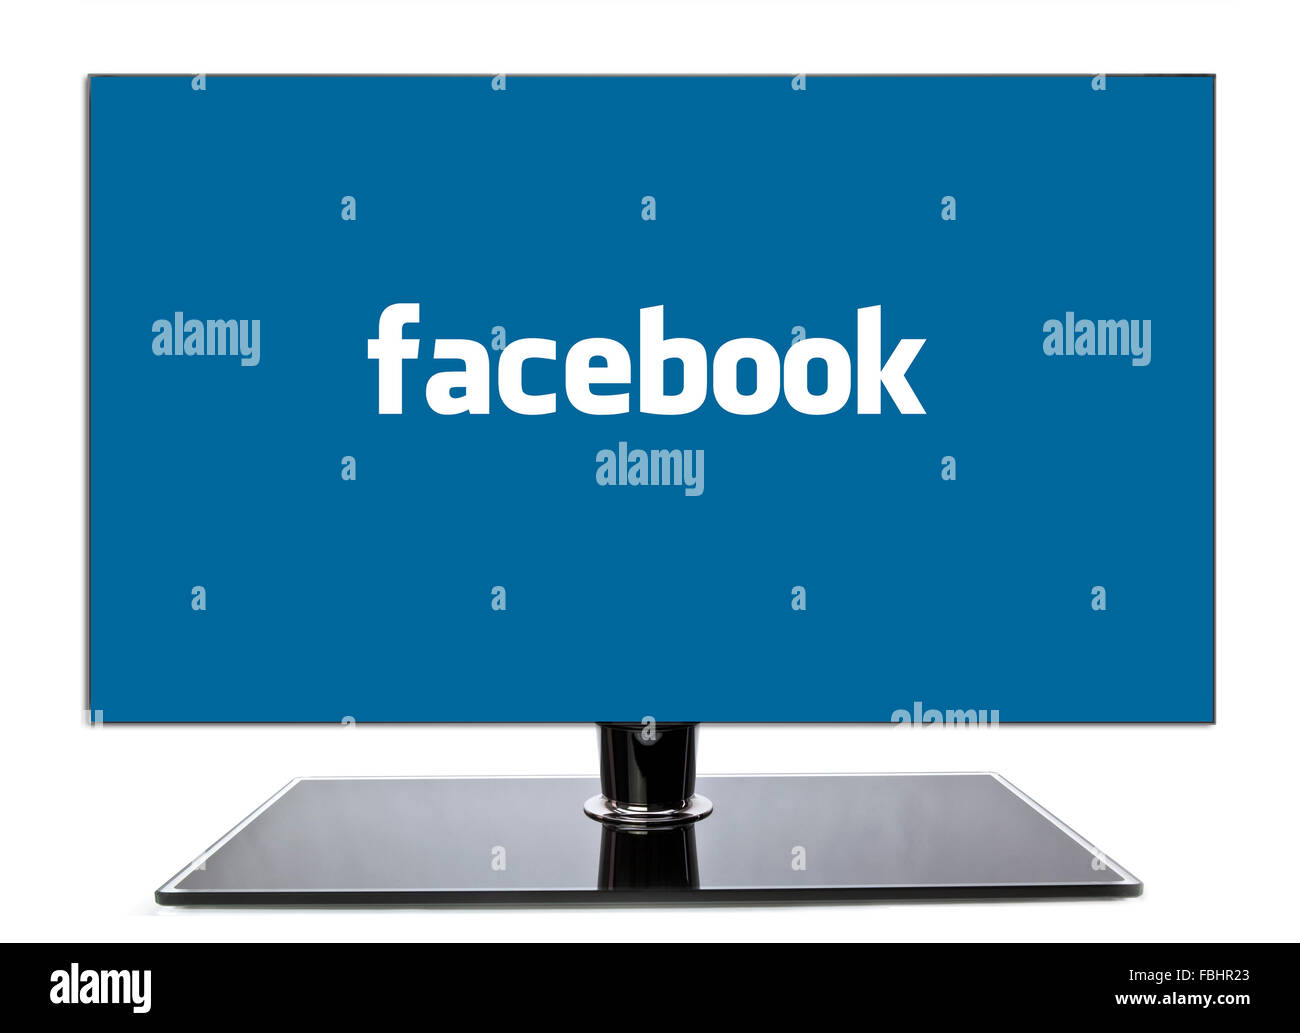 Monitor Showing Facebook page on a white background - Stock Image